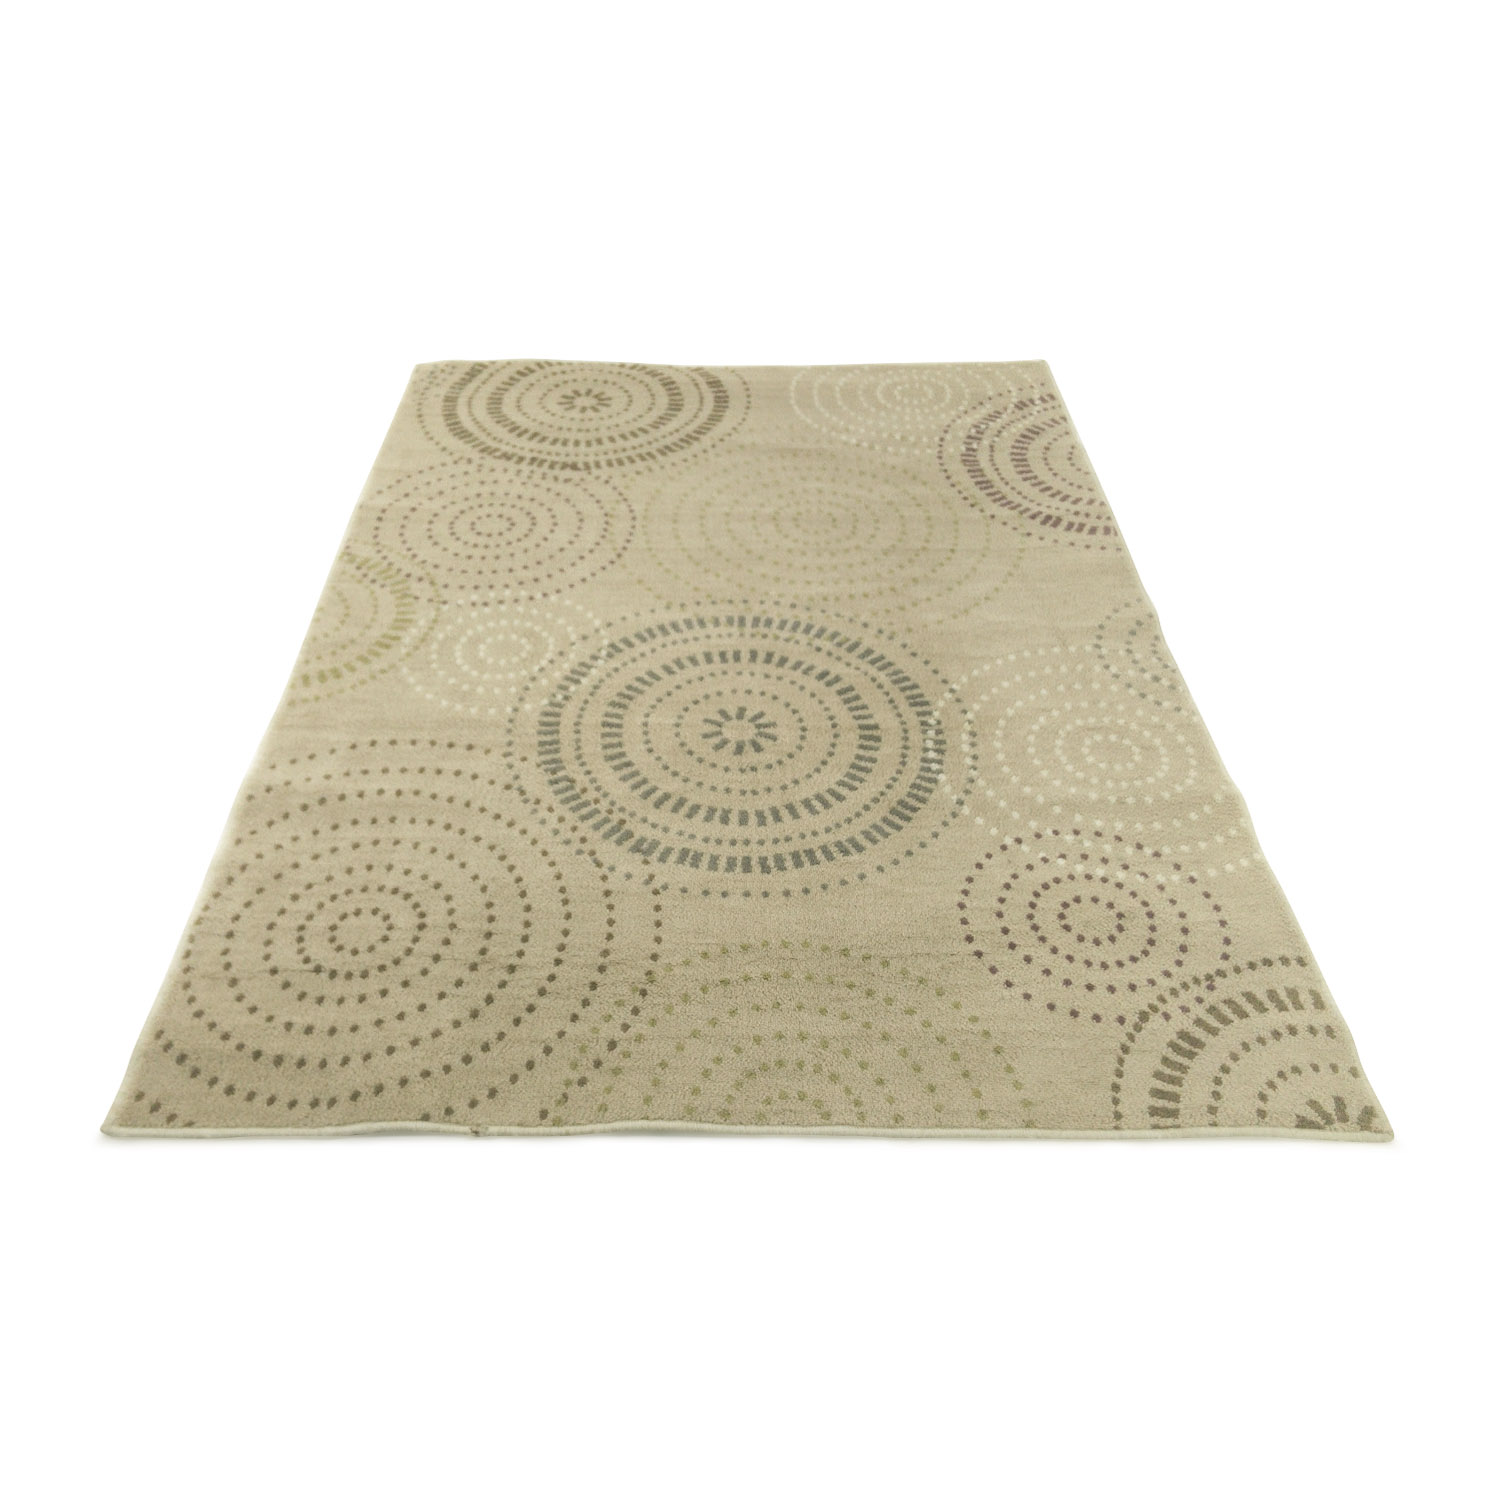 Wonderful 57% OFF - Next Next Grey and White Rug / Decor CC96